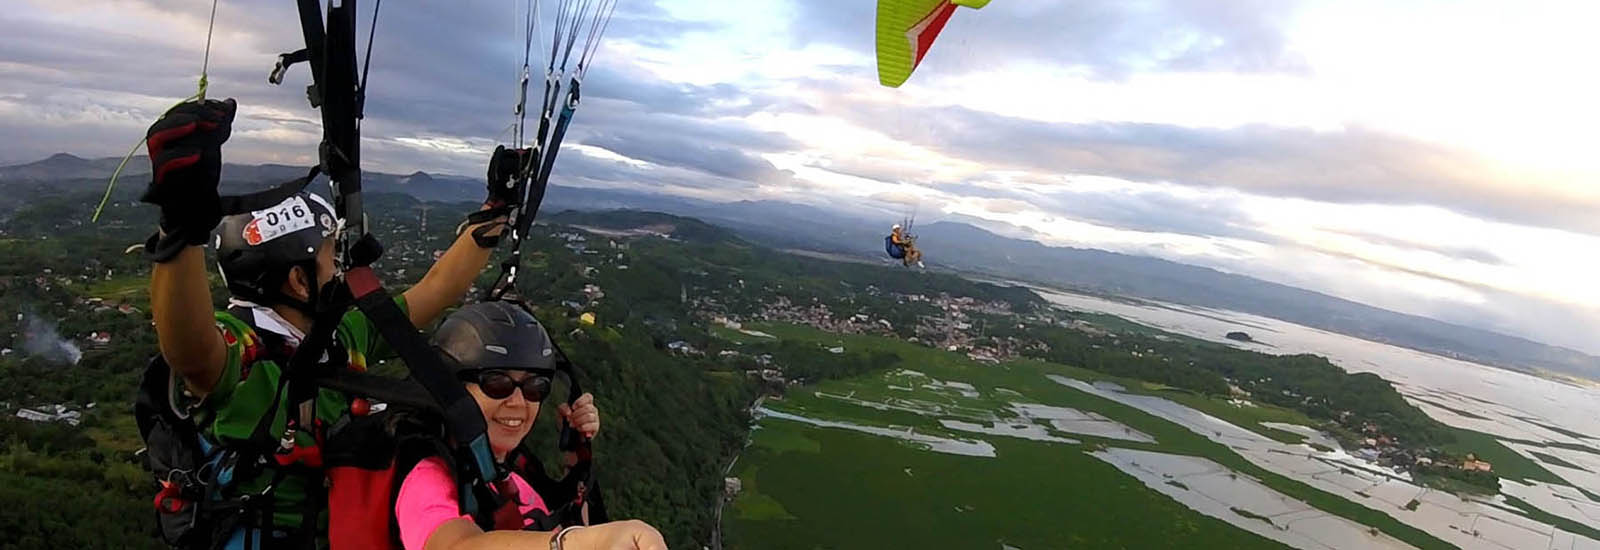 Cloudbase Paragliding First in Philippines